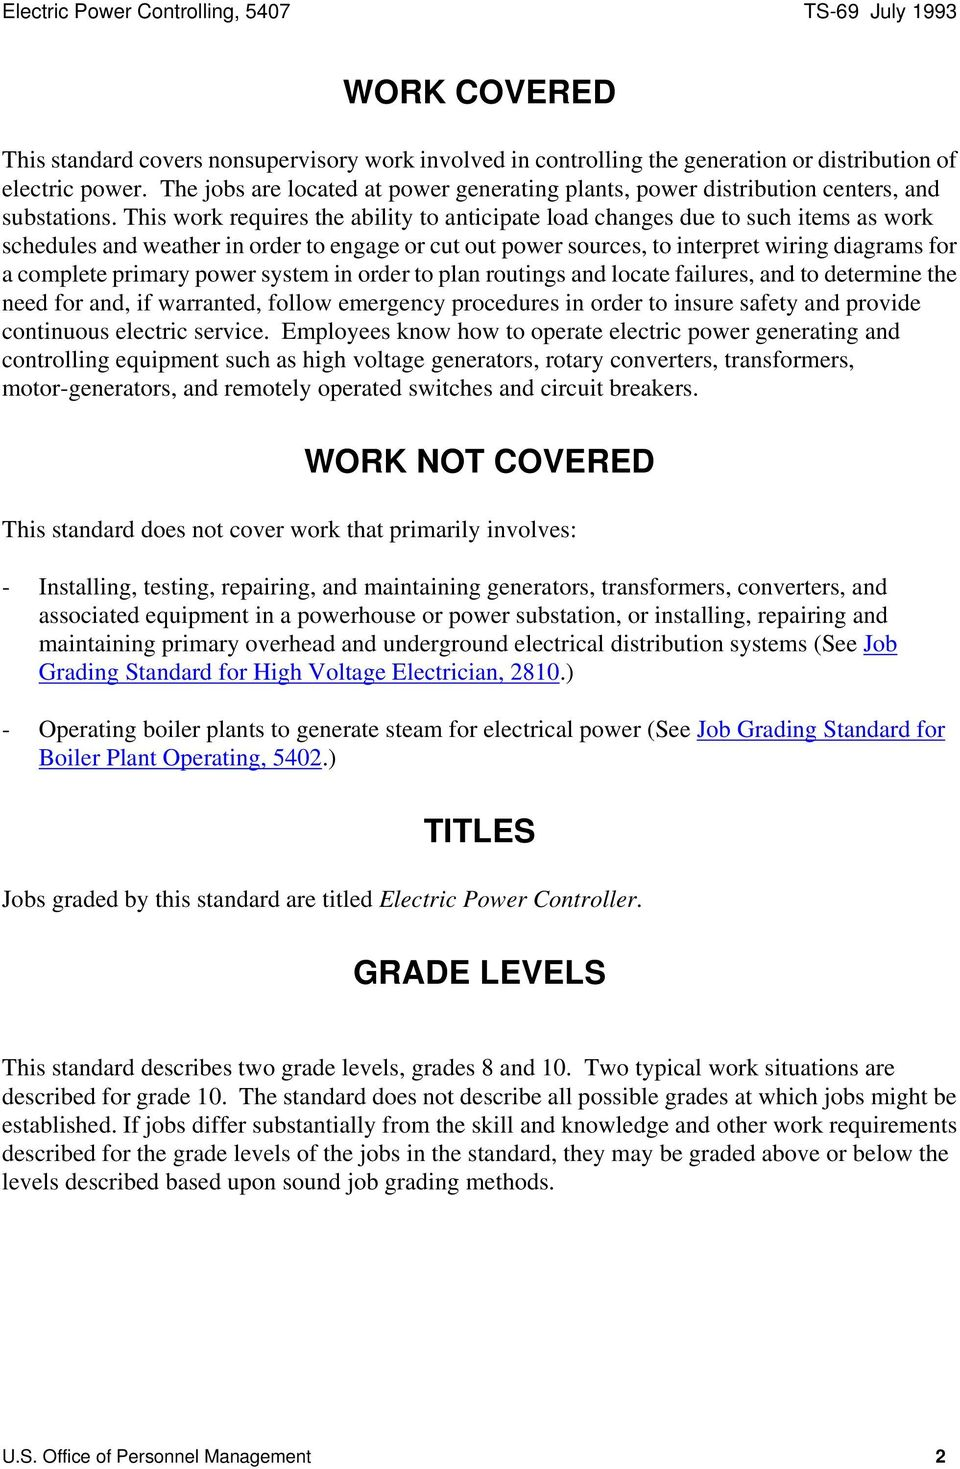 Federal Wage System Job Grading Standards For Electric Power Underground Wiring Diagram This Work Requires The Ability To Anticipate Load Changes Due Such Items As Schedules